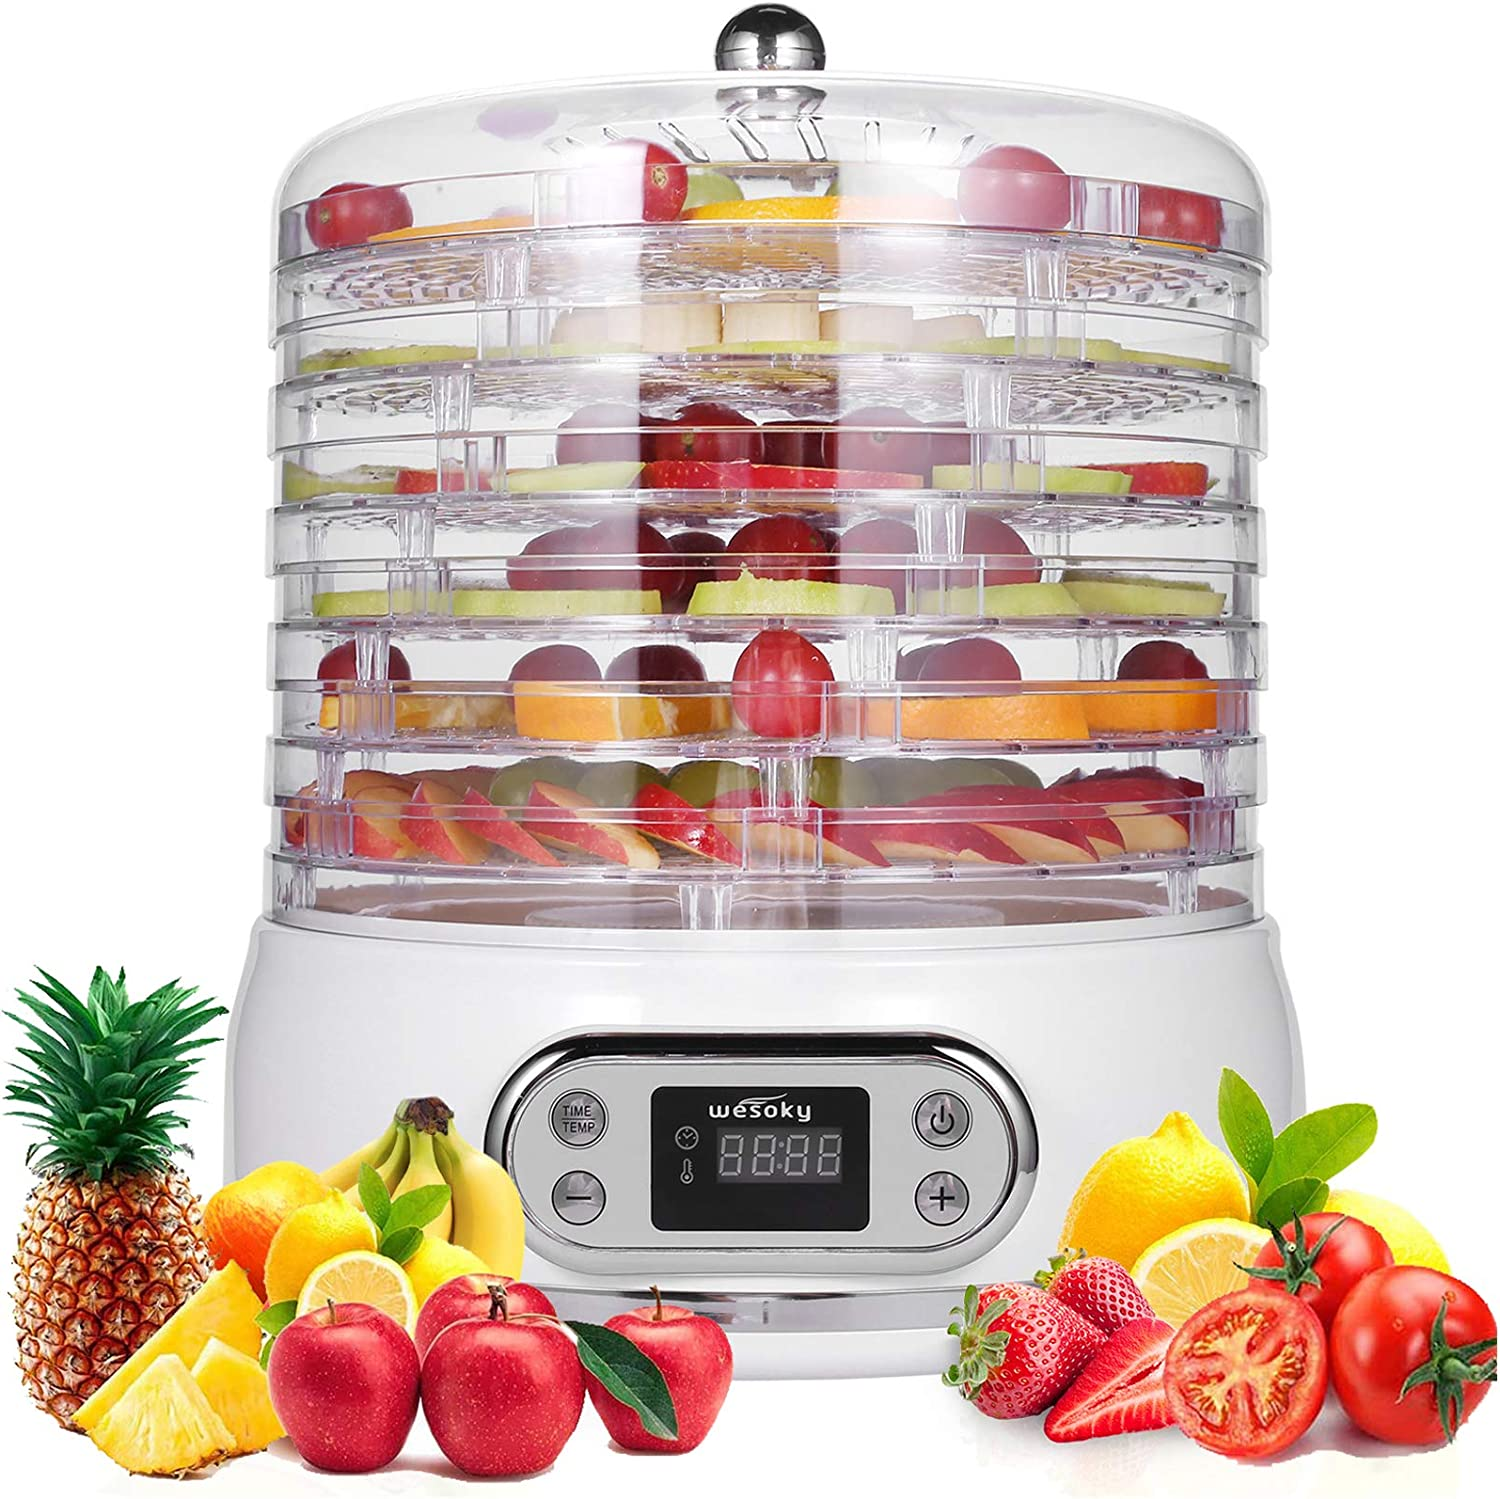 Food Dehydrator,6 Tray Dehydrator for Food/Beef Jerky/Meat/Fruit/Dog Treats/Herbs/Vegetable, 400W Food Fruit Dehydrator with Digital Timer&Temperature Control, Herb Jerky Food Dehydrator BPA Free